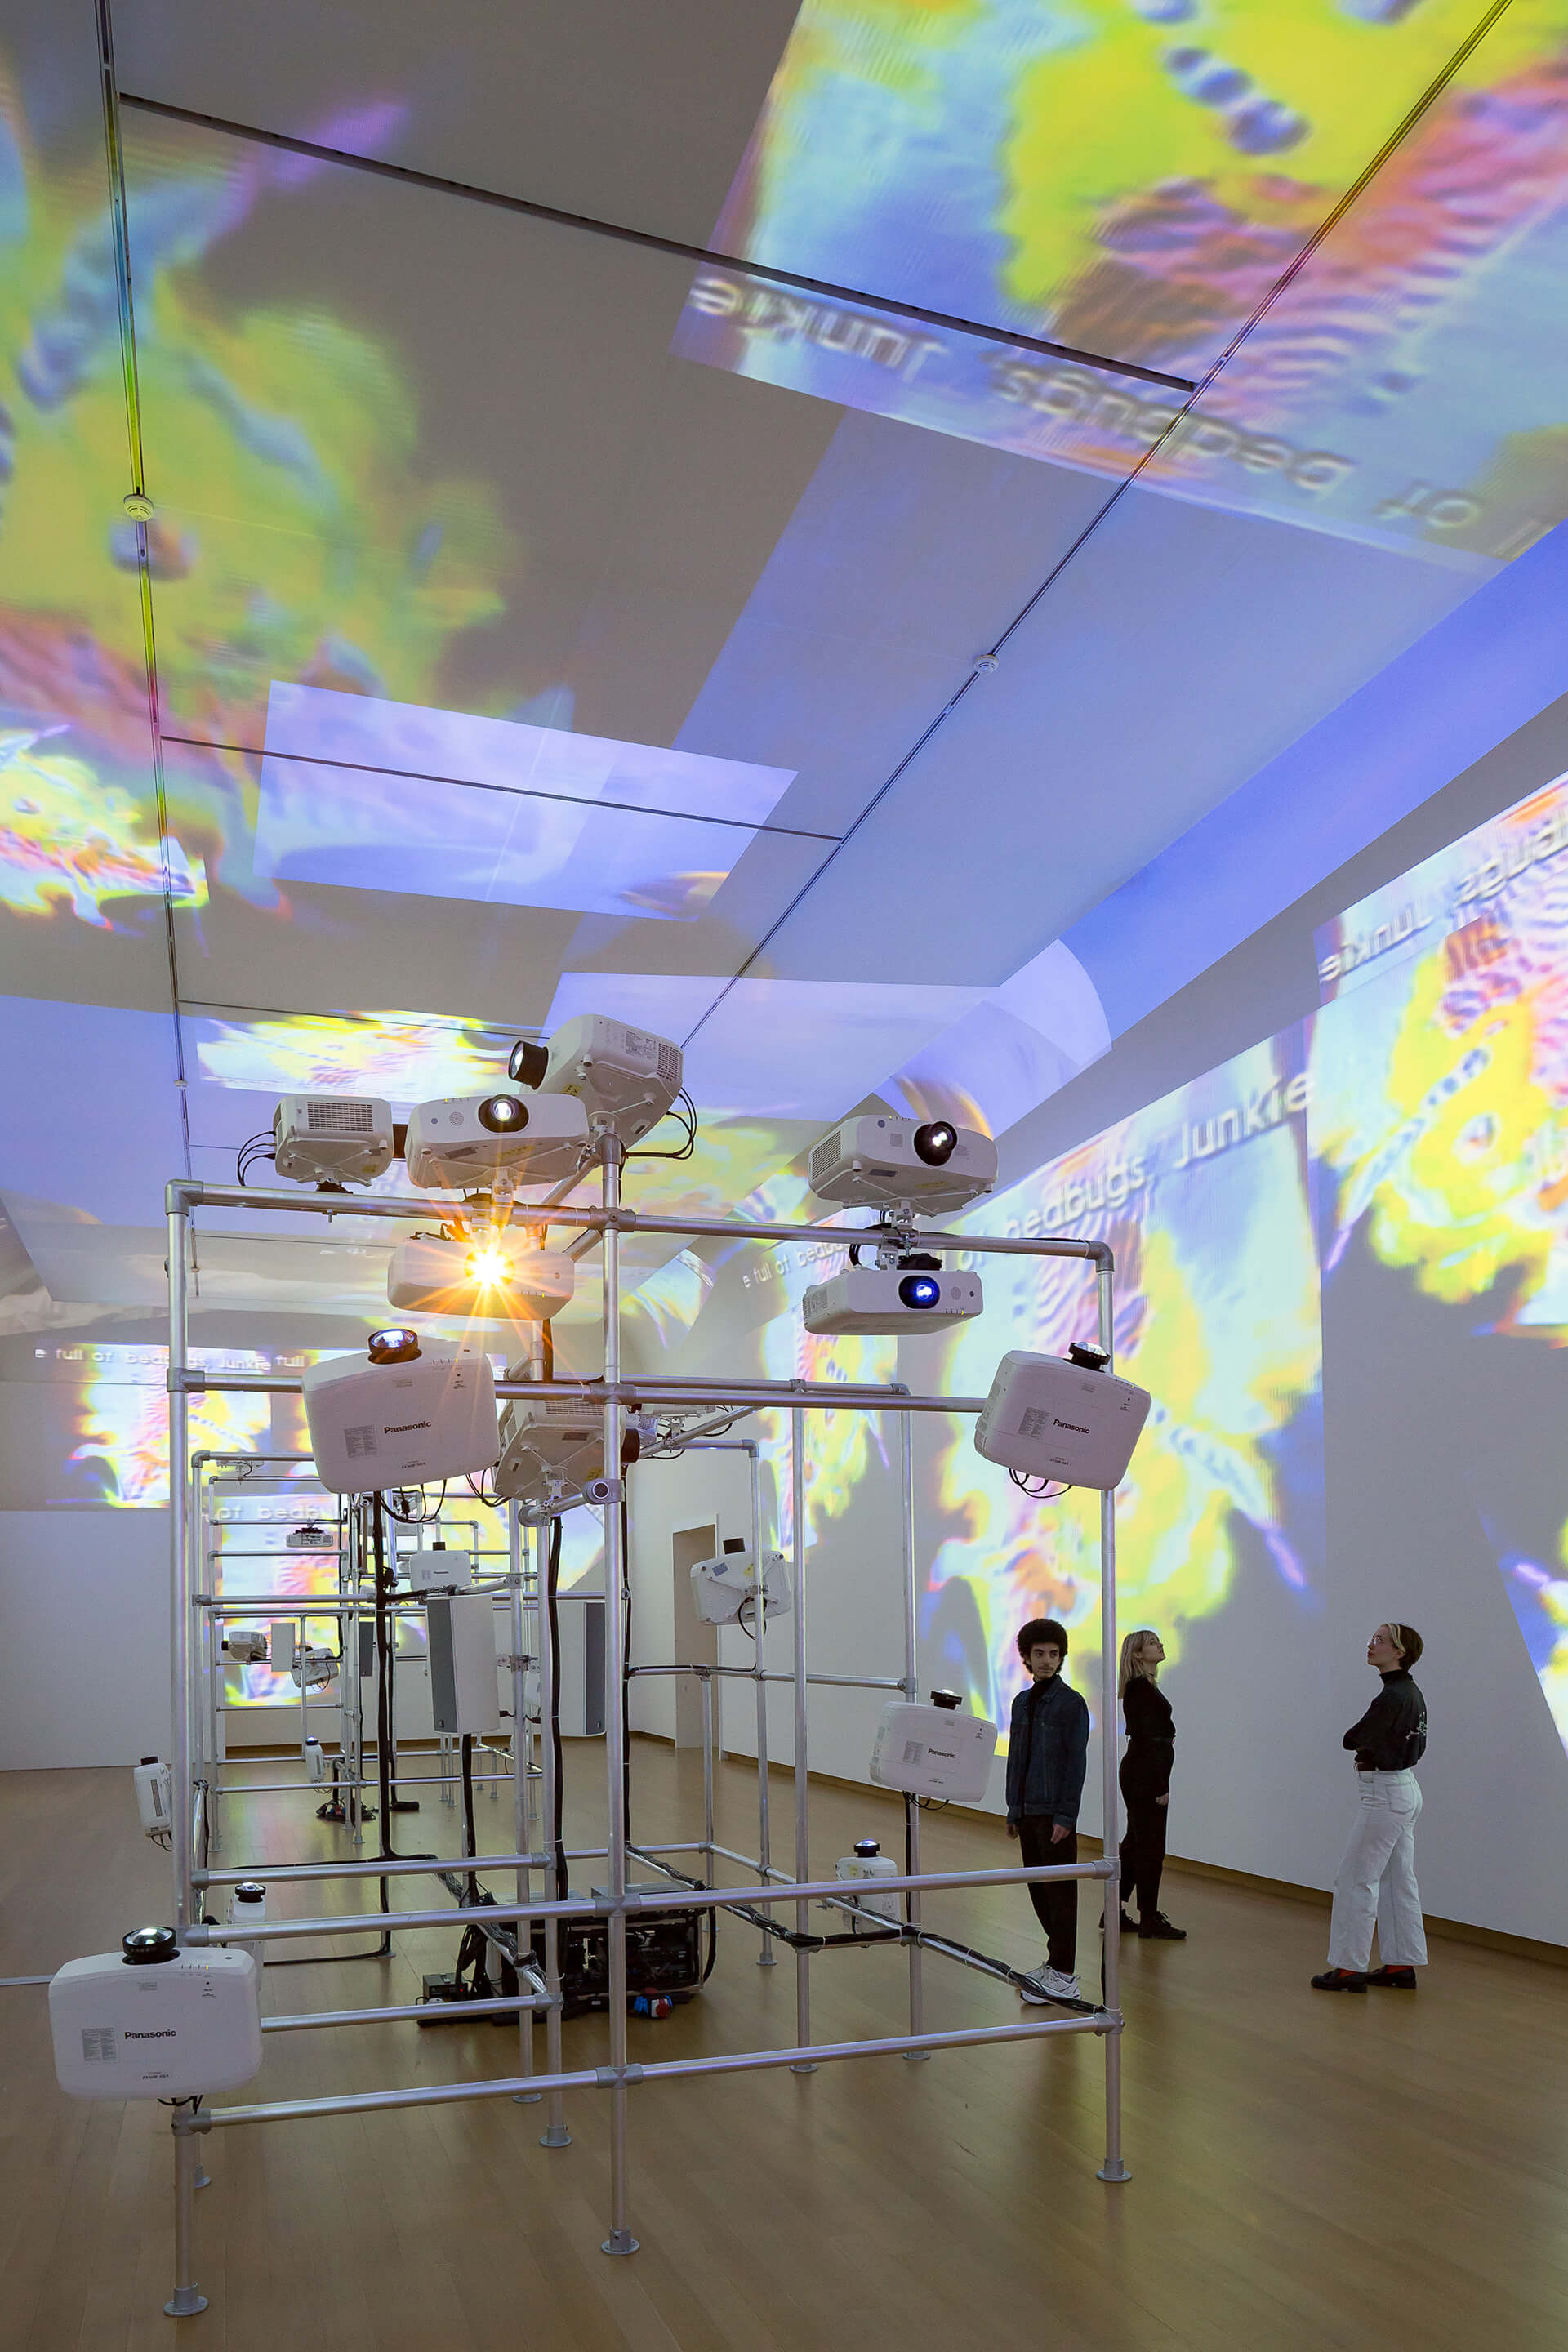 'Sistine Chapel' by Nam June Paik using multiple projectors is also a part of The Future Is Now | The Future Is Now by Nam June Paik | STIRworld